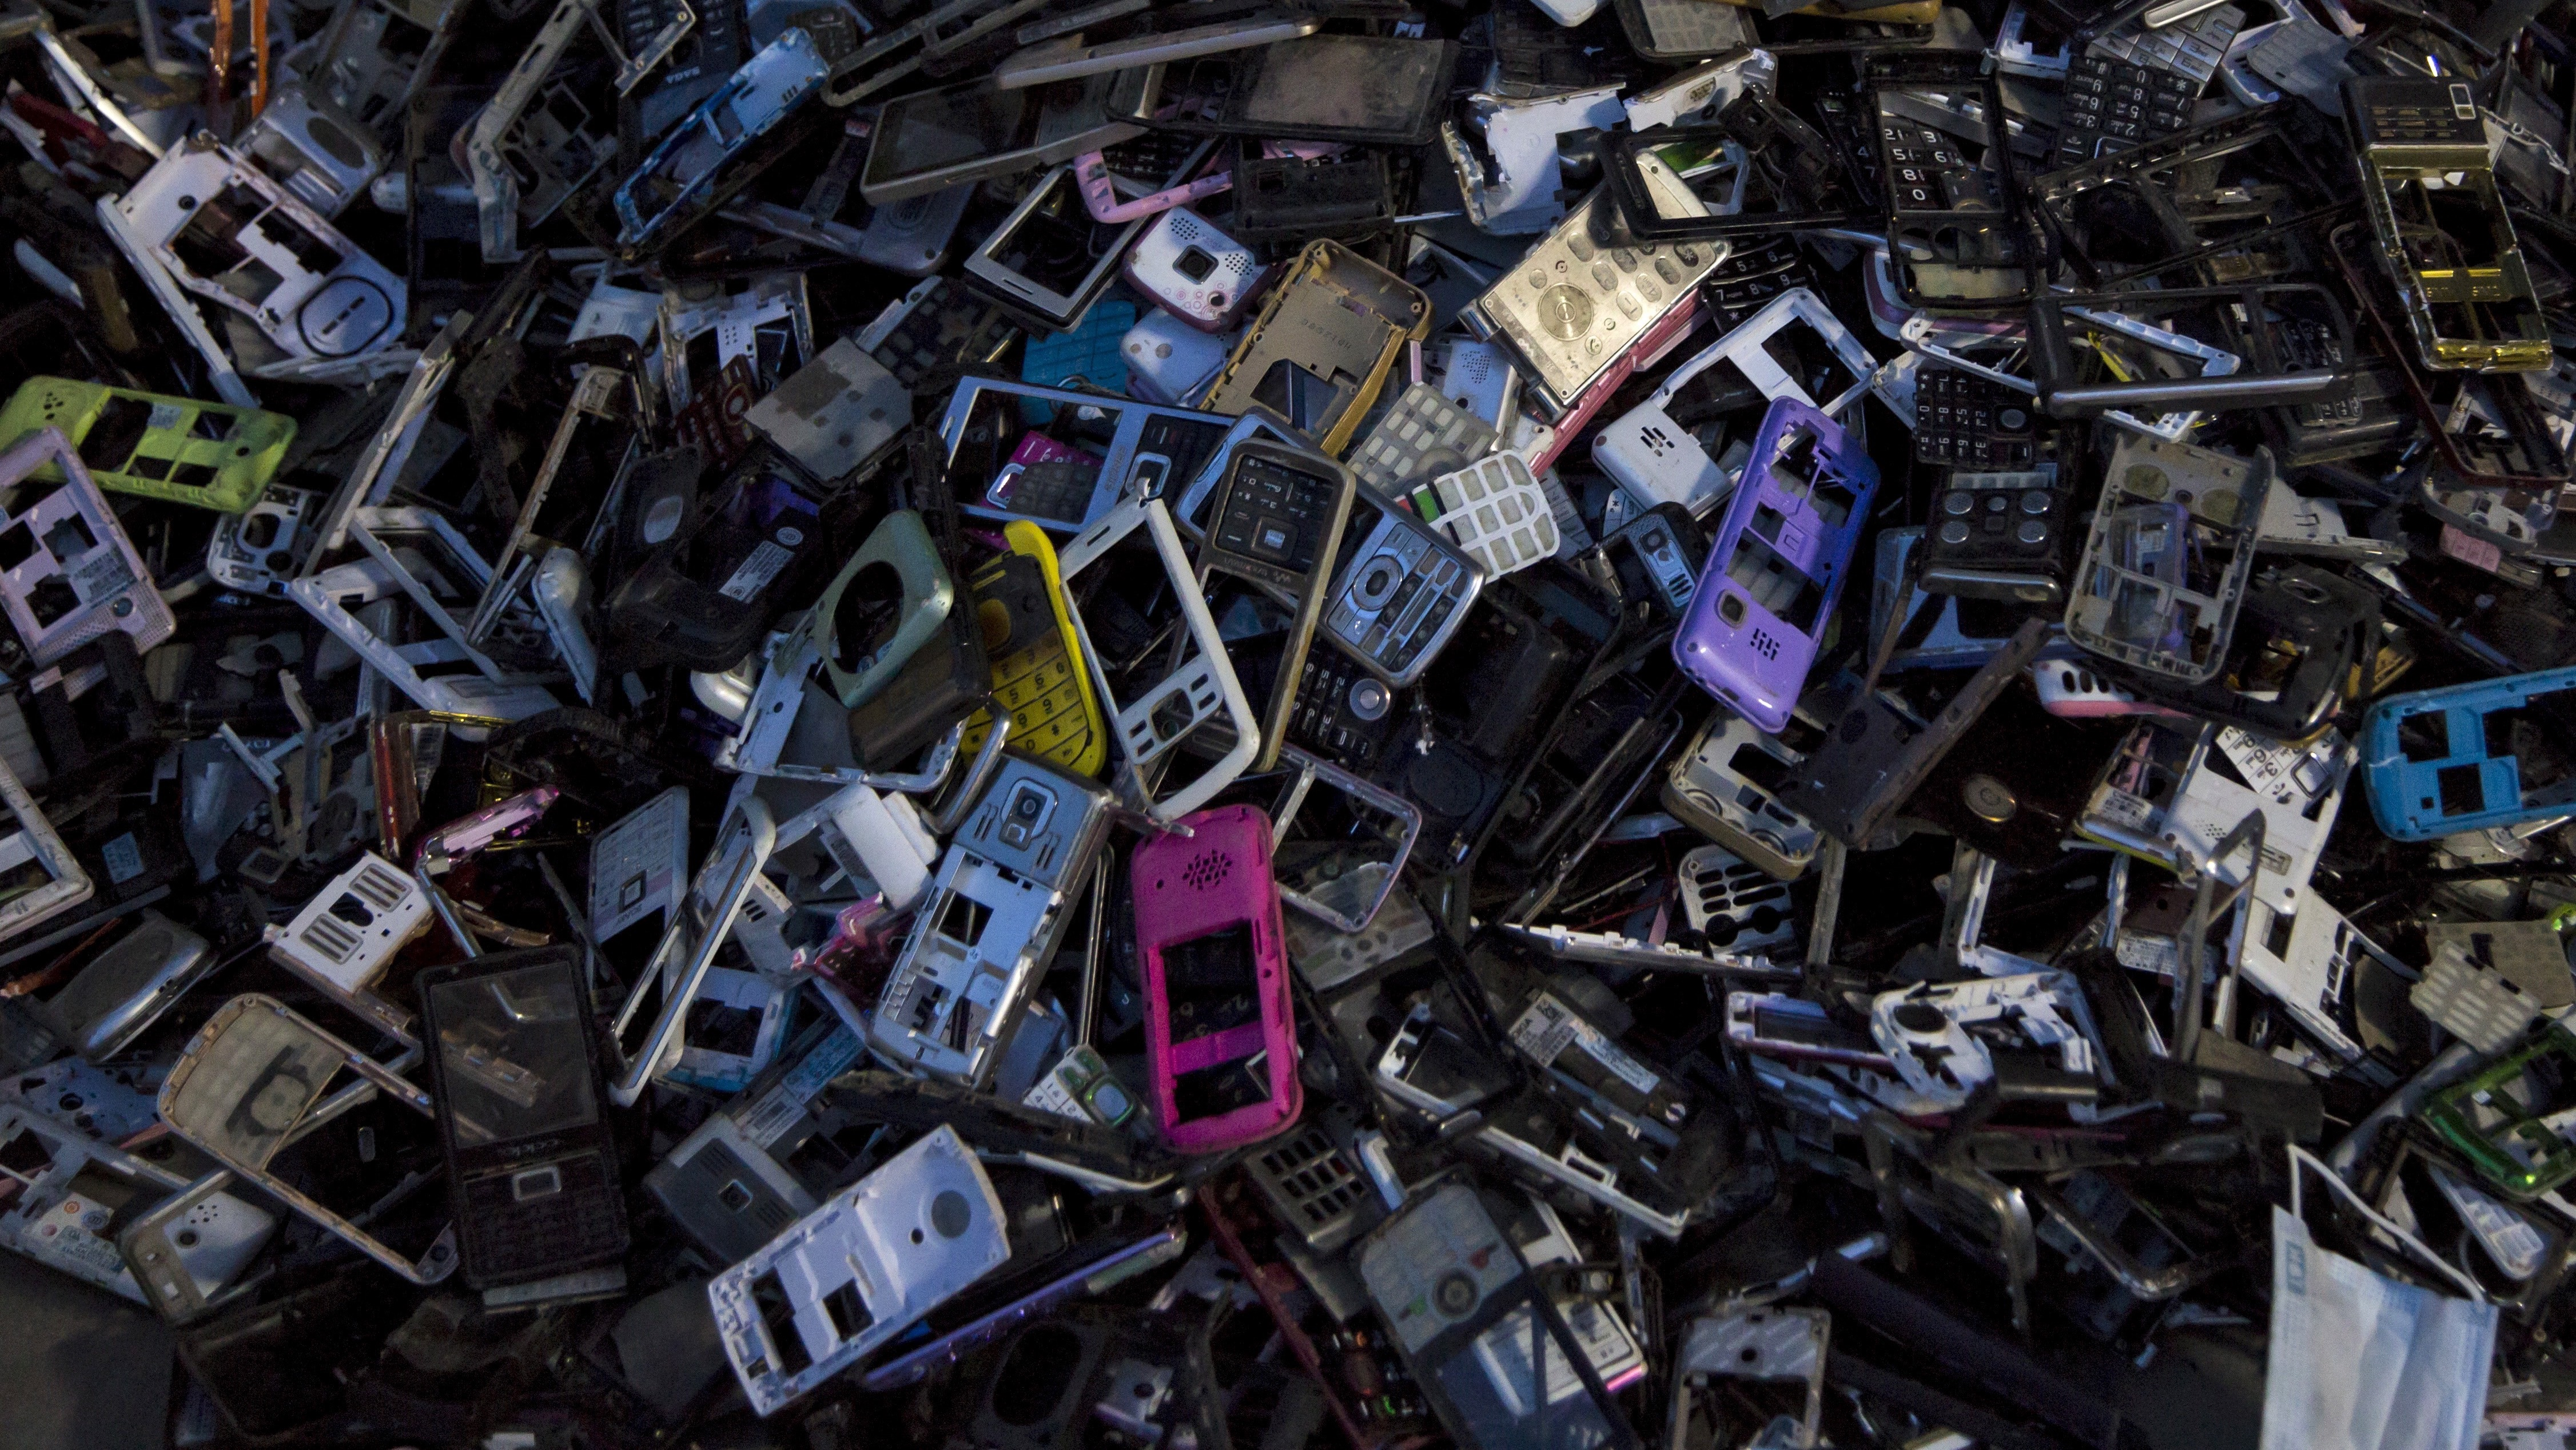 """Old cellular phone components are discarded inside a workshop in the township of Guiyu in China's southern Guangdong province June 10, 2015. The town of Guiyu in the economic powerhouse of Guangdong province in China has long been known as one of the worldís largest electronic waste dump sites. At its peak, some 5,000 workshops in the village recycle 15,000 tonnes of waste daily including hard drives, mobile phones, computer screens and computers shipped in from across the world. Many of the workers, however, work in poorly ventilated workshops with little protective gear, prying open discarded electronics with their bare hands. Plastic circuit boards are also melted down to salvage bits of valuable metals such as gold, copper and aluminum. As a result, large amounts of pollutants, heavy metals and chemicals are released into the rivers nearby, severely contaminating local water supplies, devastating farm harvests and damaging the health of residents. The stench of burnt plastic envelops the small town of Guiyu, while some rivers are black with industrial effluent. According to research conducted by Southern Chinaís Shantou University, Guiyuís air and water is heavily contaminated by toxic metal particles. As a result, children living there have abnormally high levels of lead in their blood, the study found. While most of the e-waste was once imported into China and processed in Guiyu, much more of the discarded e-waste now comes from within China as the country grows in affluence. China now produces 6.1 million metric tonnes of e-waste a year, according to the Ministry of Industry and Information Technology, second only to the U.S with 7.2 million tonnes. REUTERS/Tyrone Siu   PICTURE 12 OF 18 FOR WIDER IMAGE STORY """"WORLD'S LARGEST ELECTRONIC WASTE DUMP"""" SEARCH """"GUIYU SIU"""" FOR ALL IMAGES   - RTX1IUQV"""